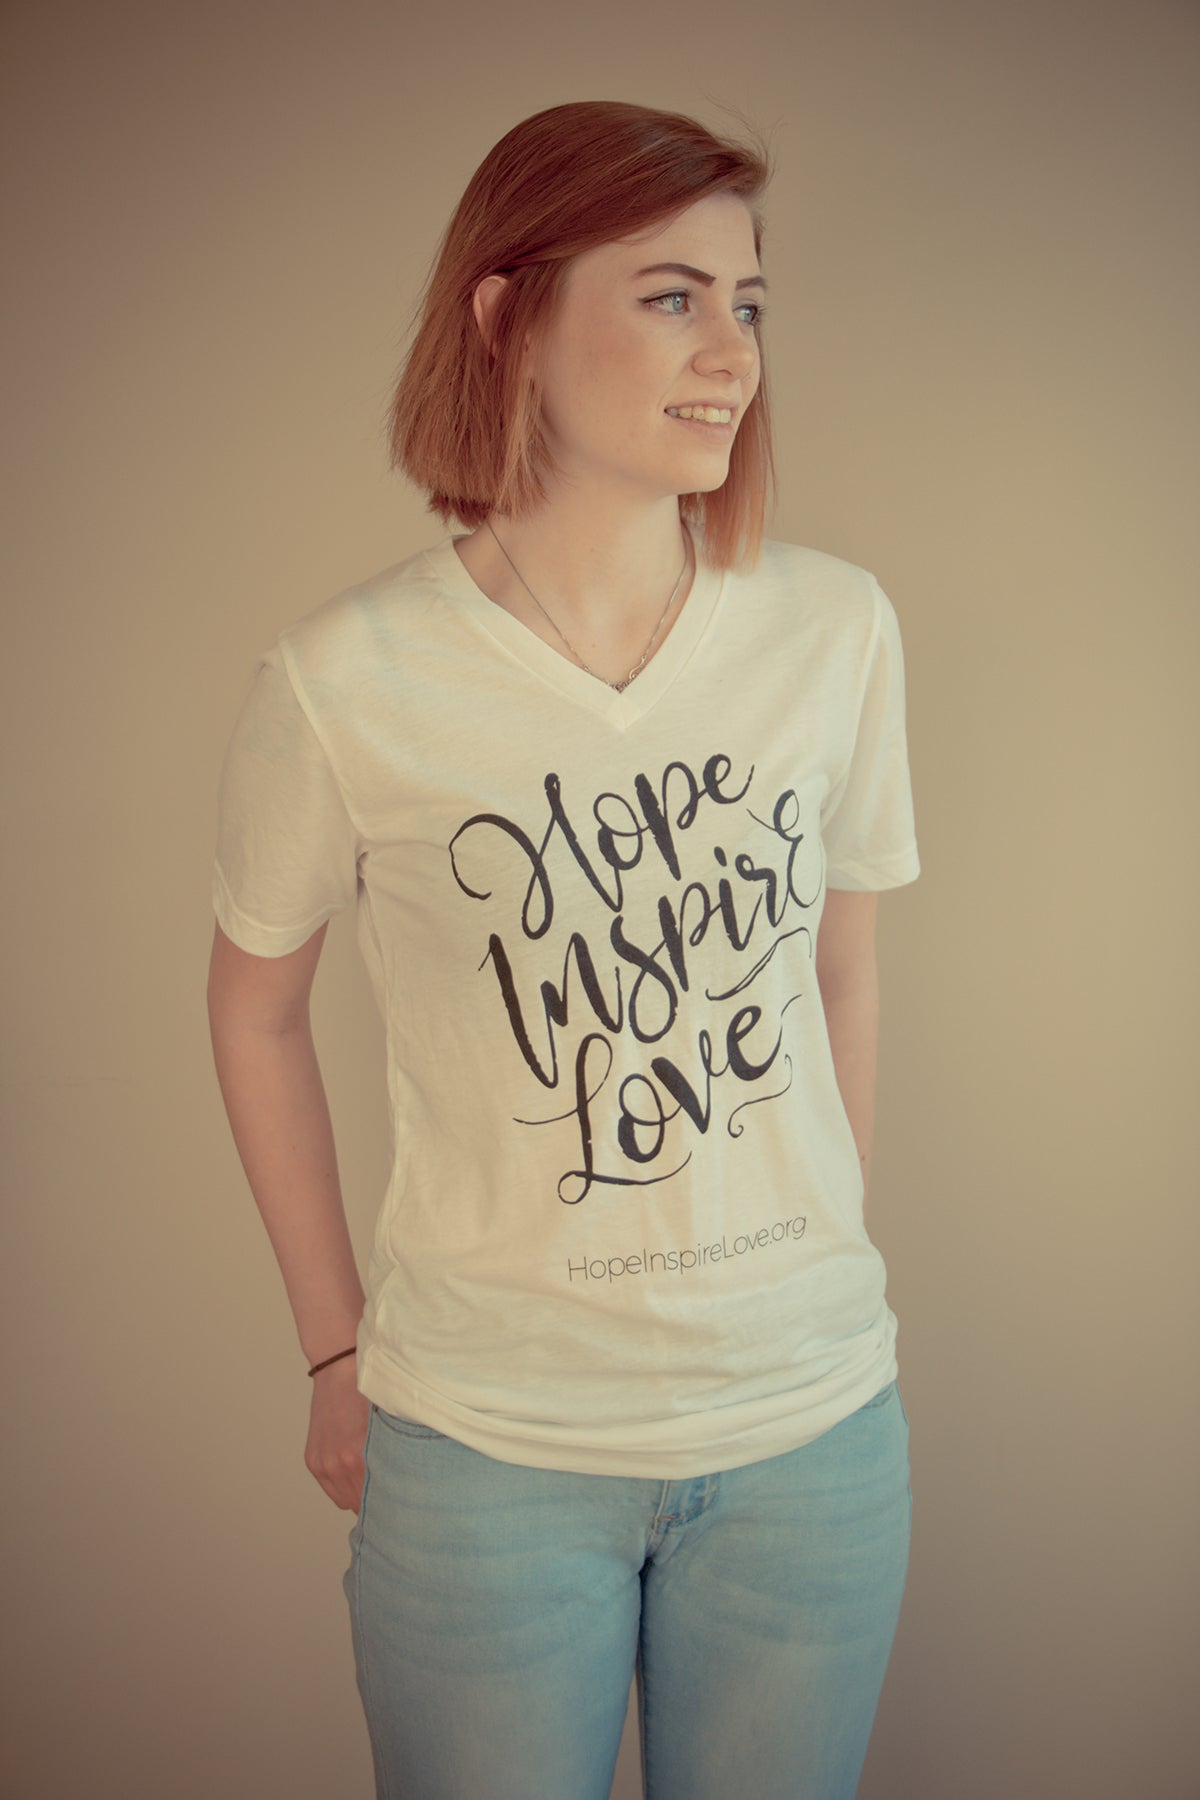 Hope Inspire Love - White V-Neck Short Sleeve T-Shirt